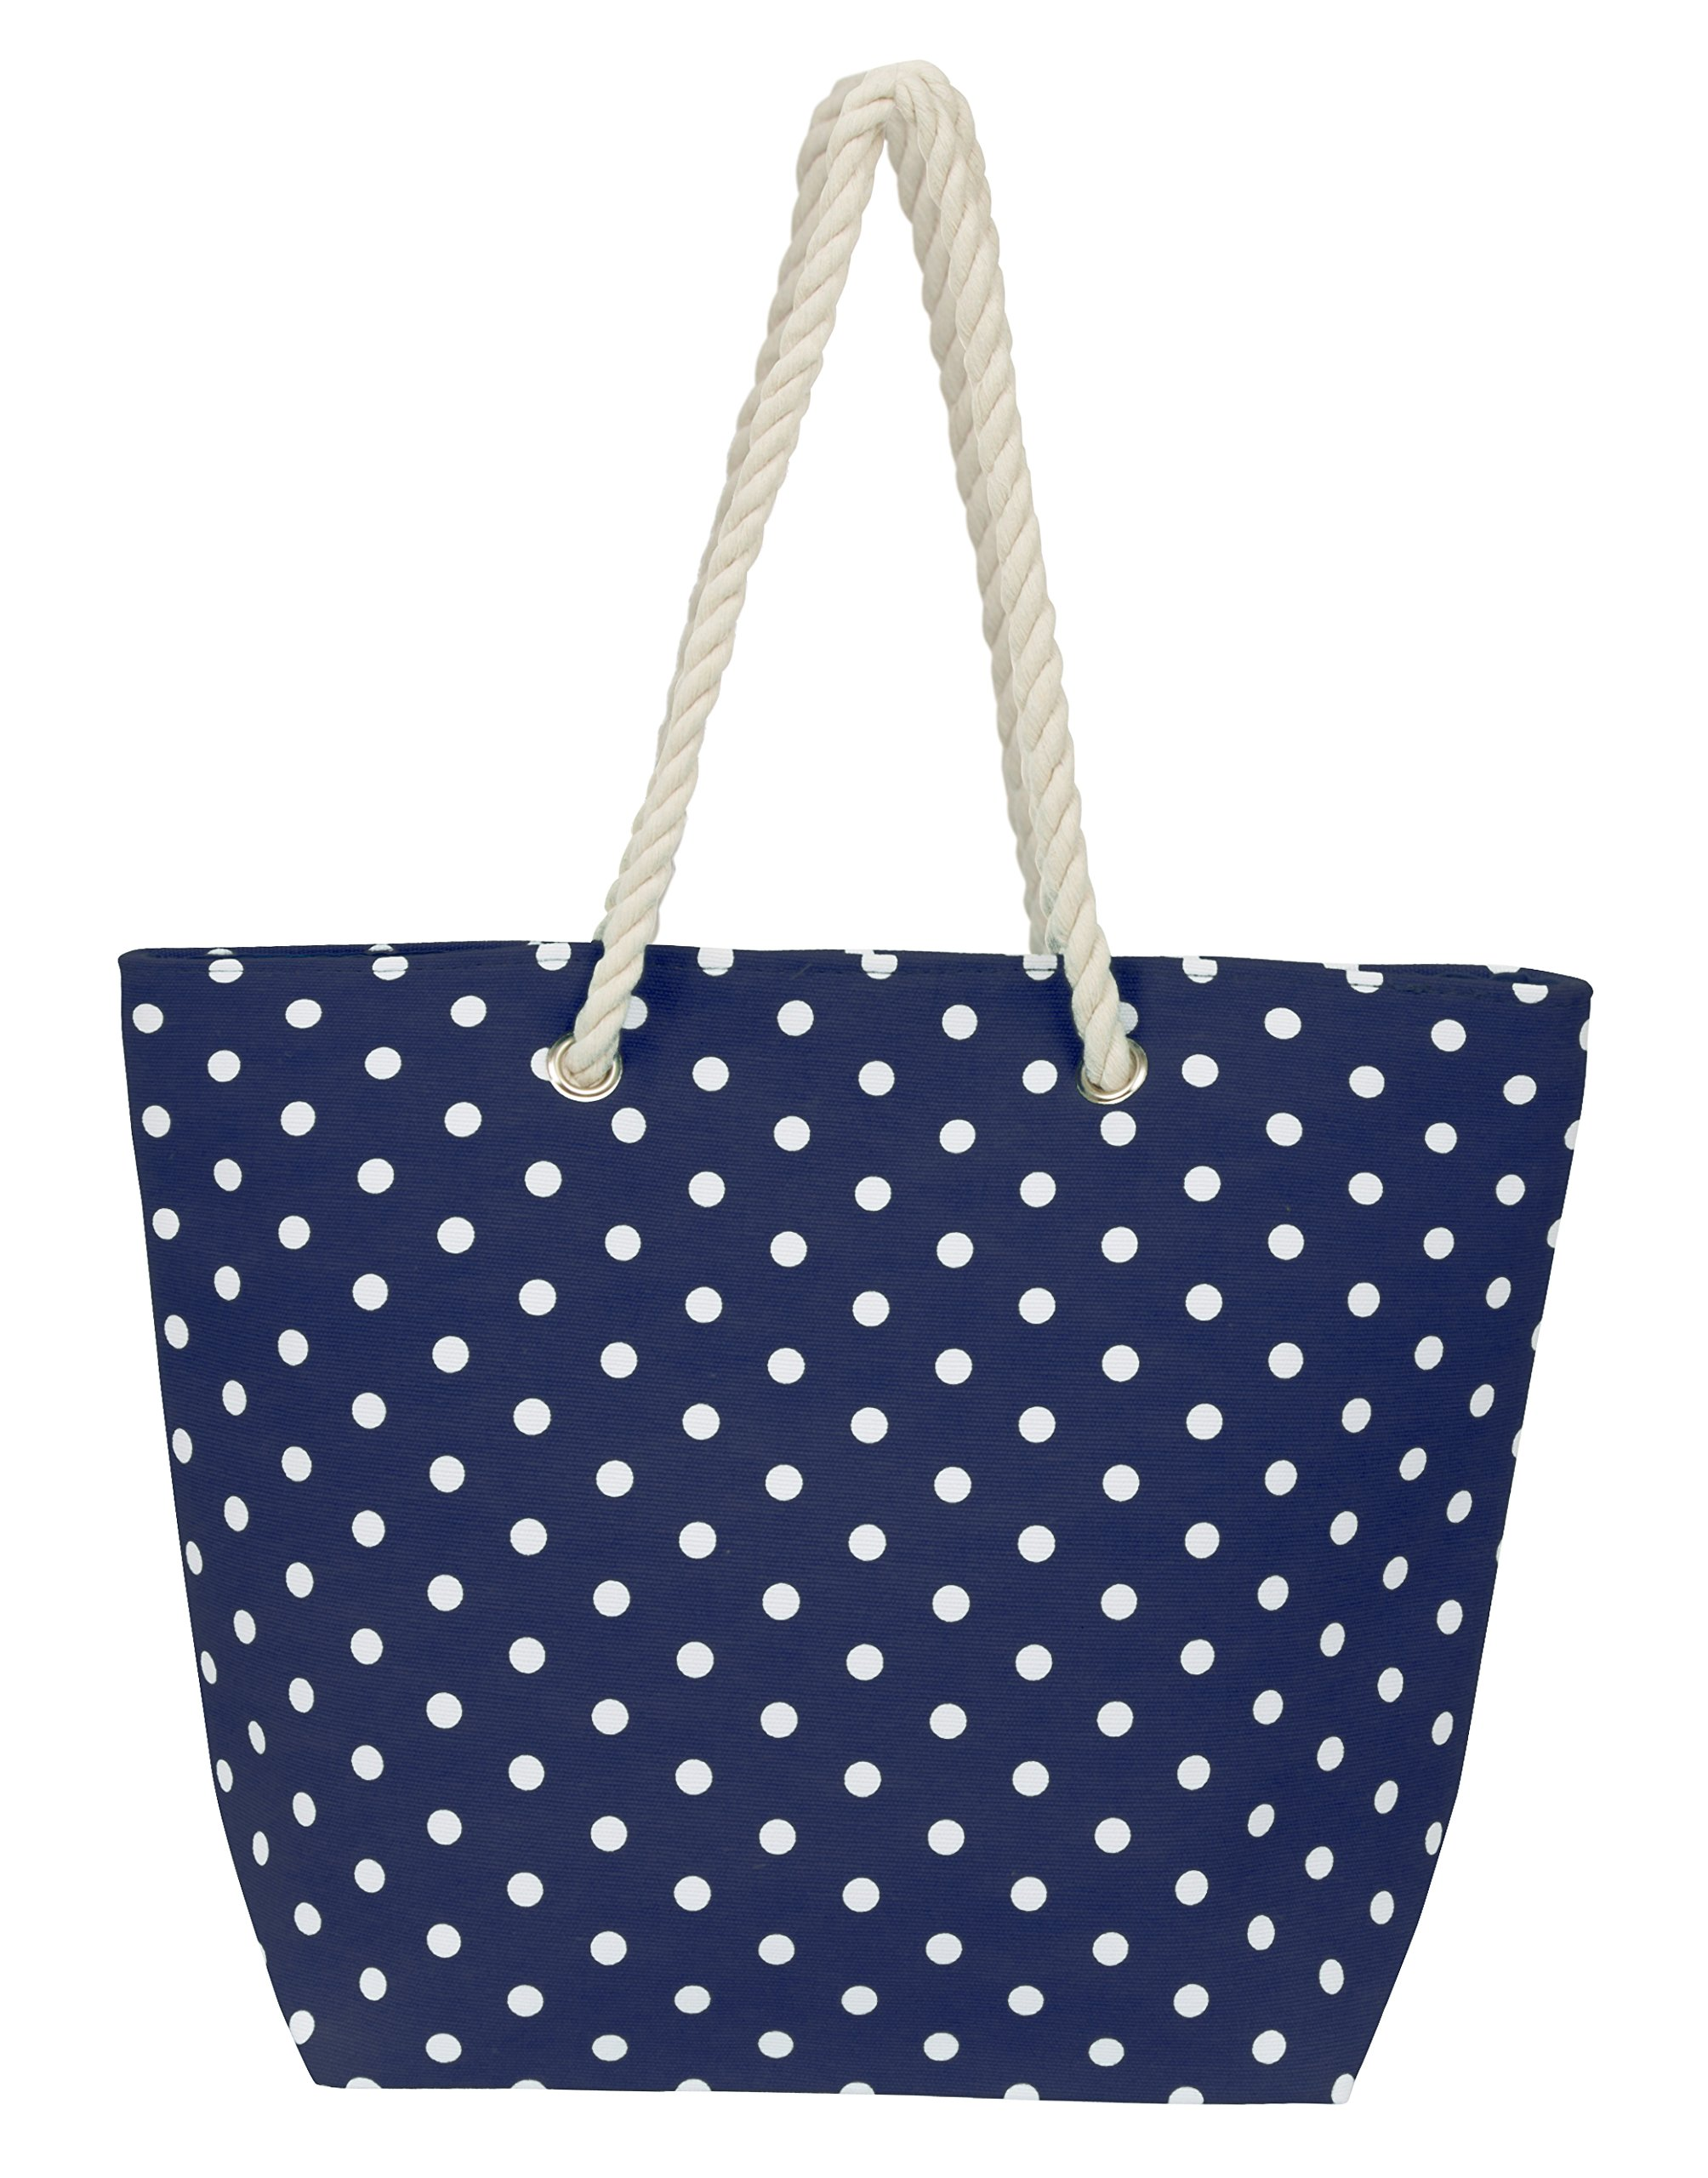 Leisureland Large Rope Handle Water Resistant Canvas Beach Tote Bag (18''x14''x6'', Polka Dots Navy Blue)